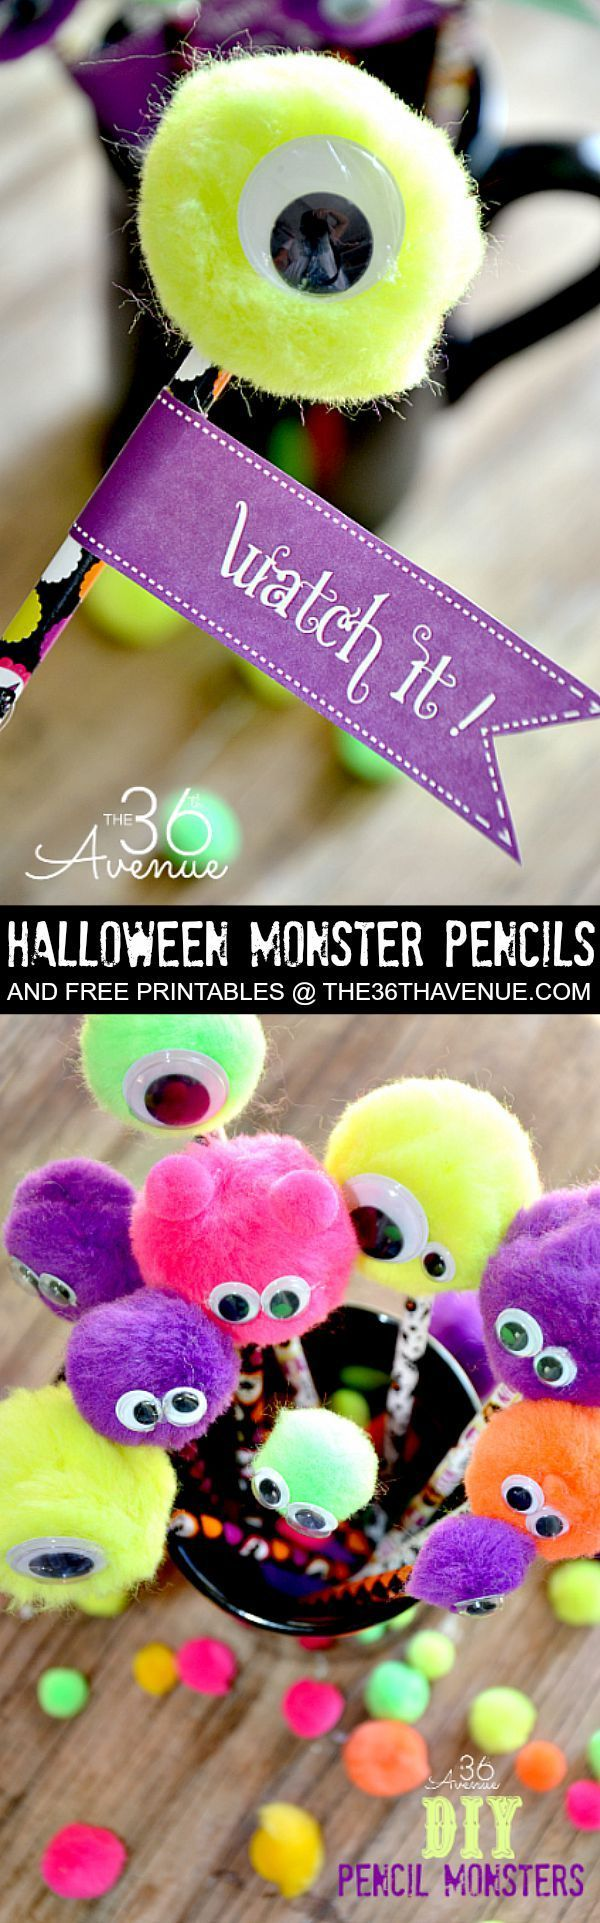 Halloween - Halloween Adorable Monster Pencils and Free Printable at http://the36thavenue.com